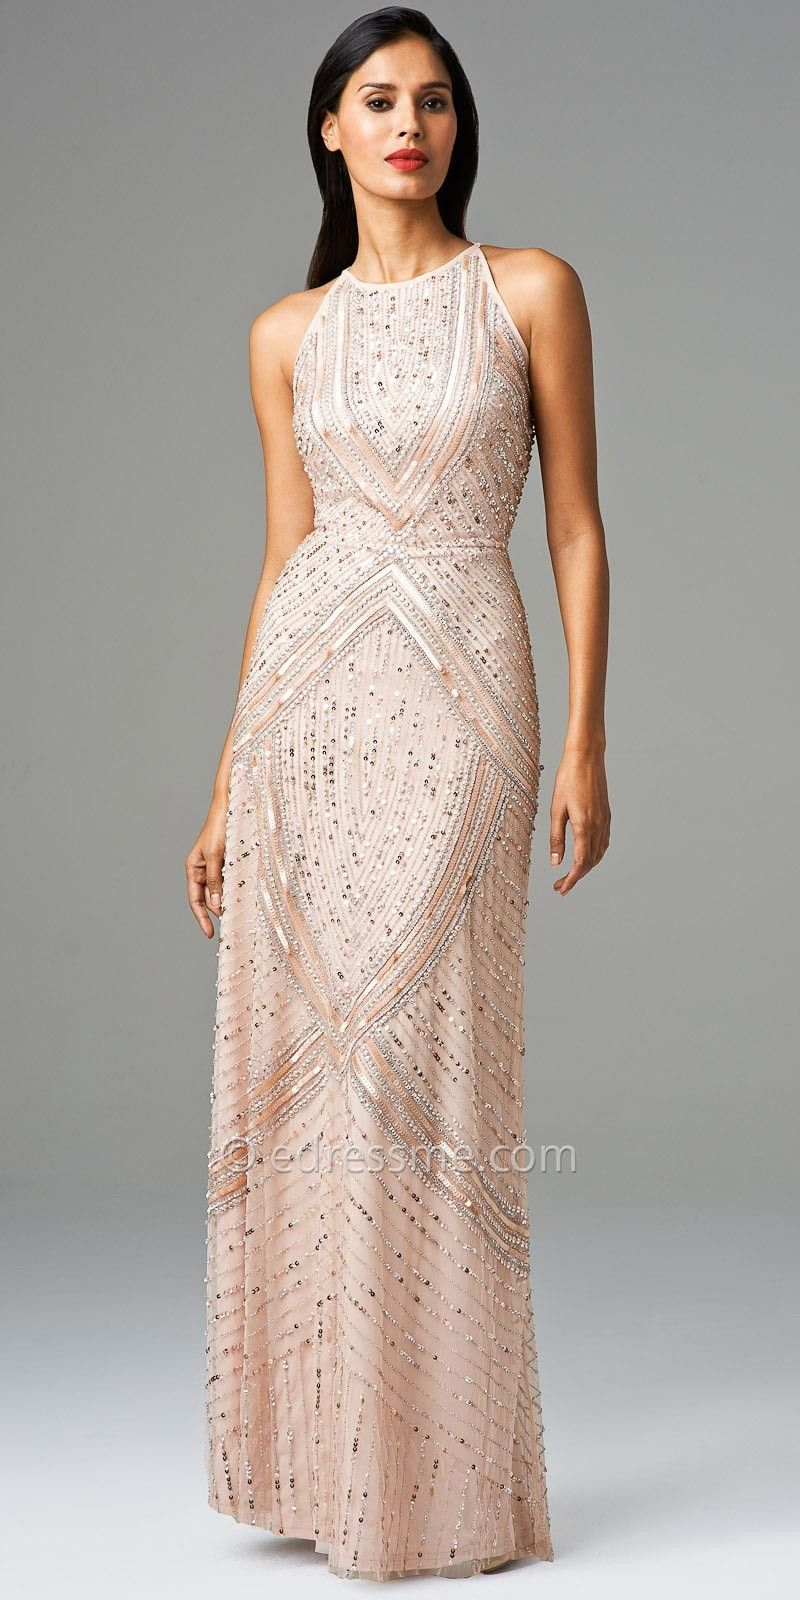 Aidan mattox logo google search designers aidan mattox beaded sequined halter evening dresses by aidan mattox image ombrellifo Choice Image